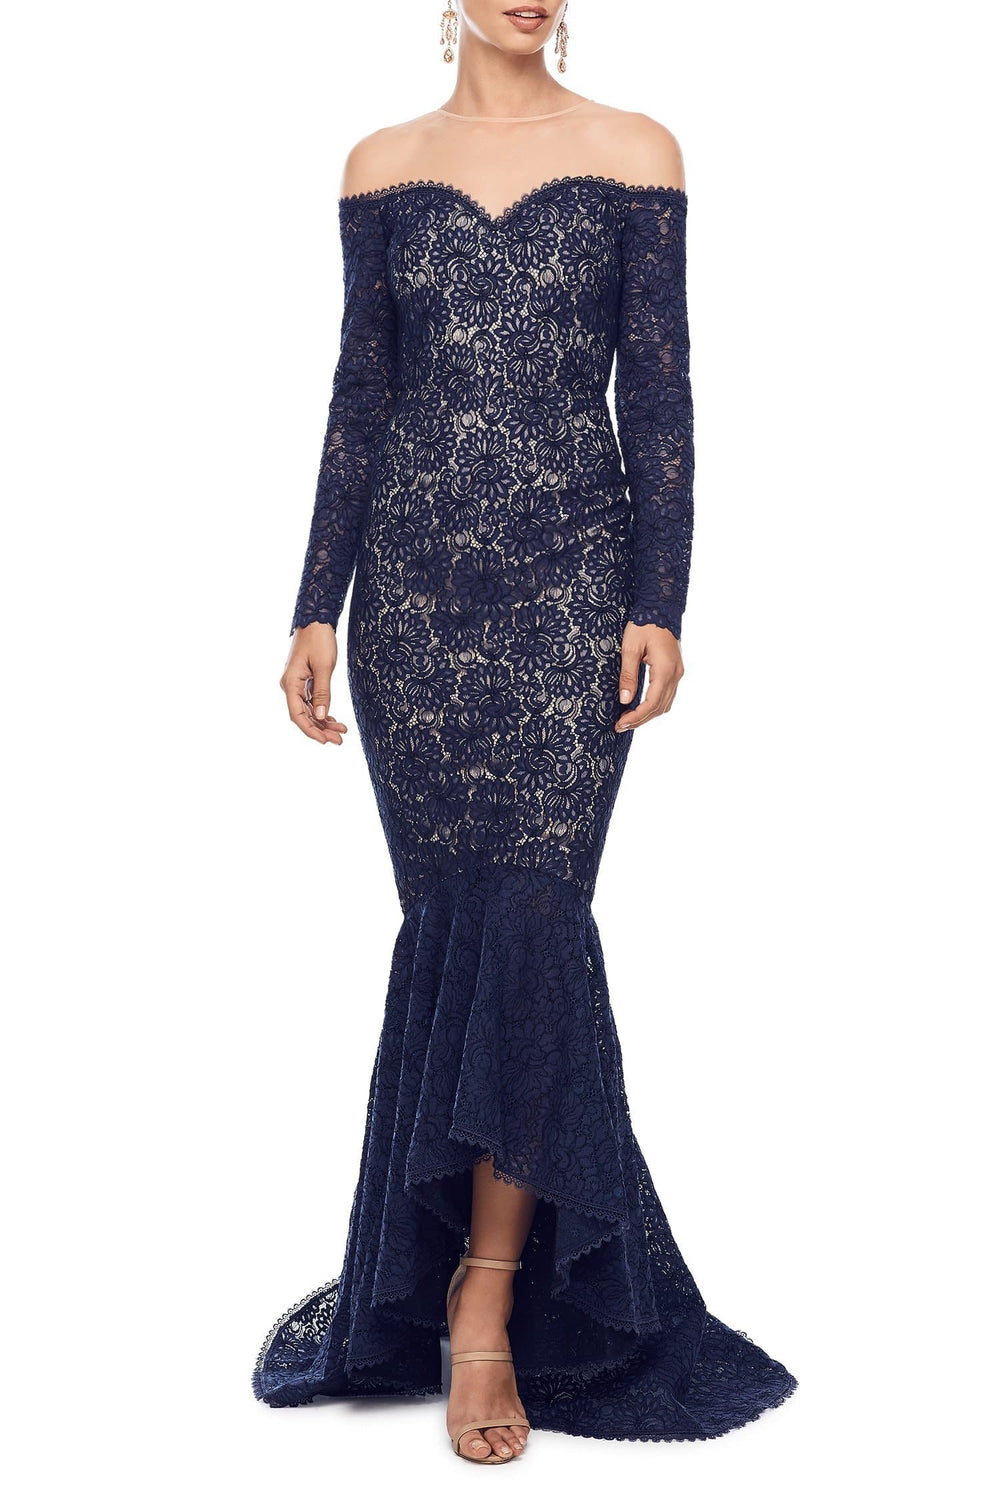 b990c6eee400d3 Margarita - Navy Lace Off-Shoulder Ling Sleeve Gown with Mermaid Train